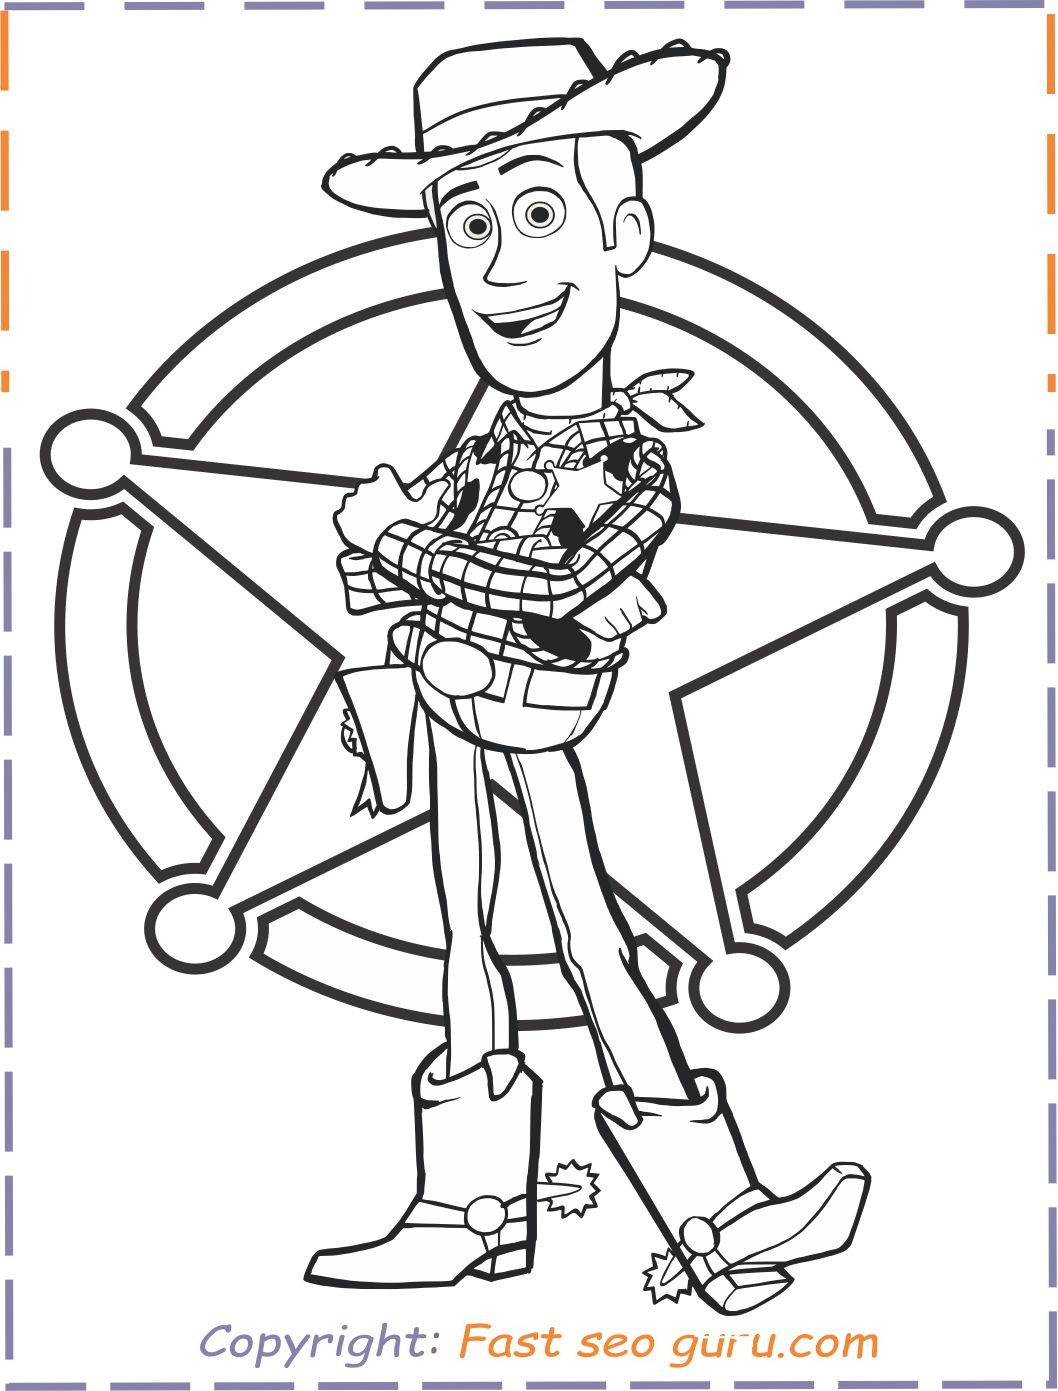 Toy Story 4 Woody Coloring Pages